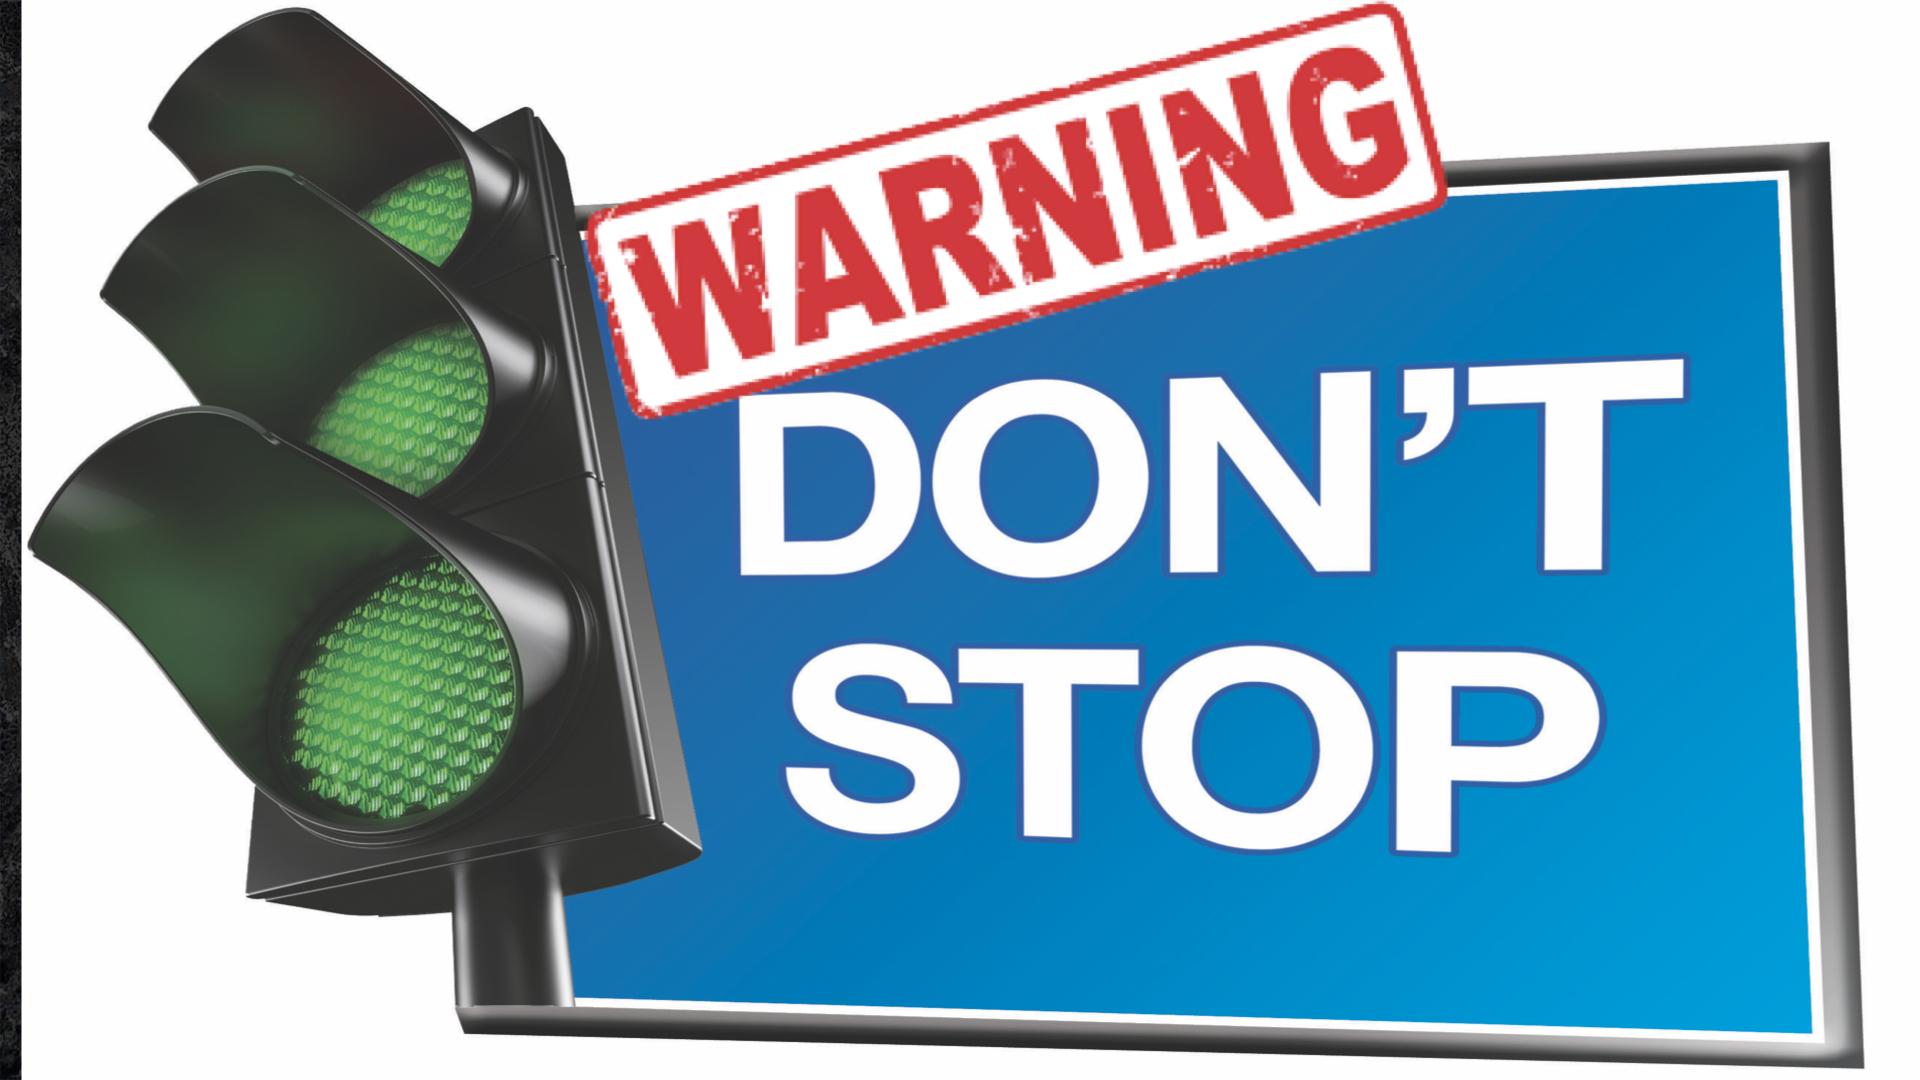 Warning Don't Stop 11/4/2018 8:28:36 AM